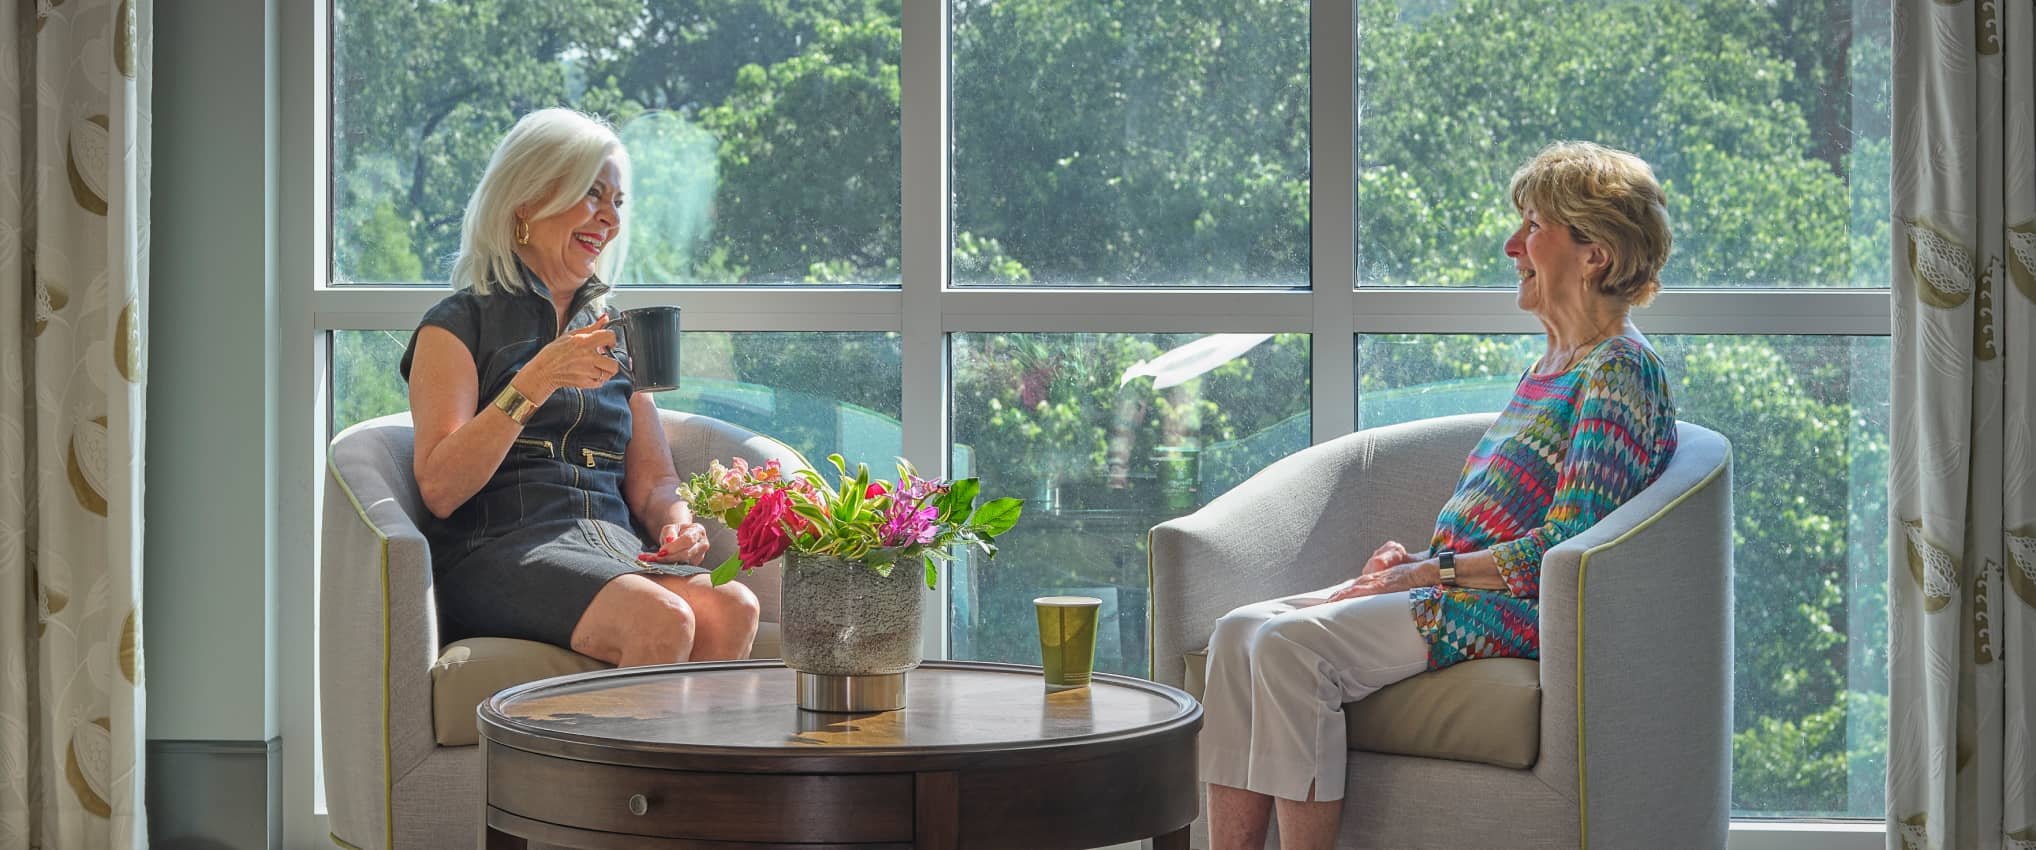 Fostering Community and Combating Loneliness in Senior Living Design